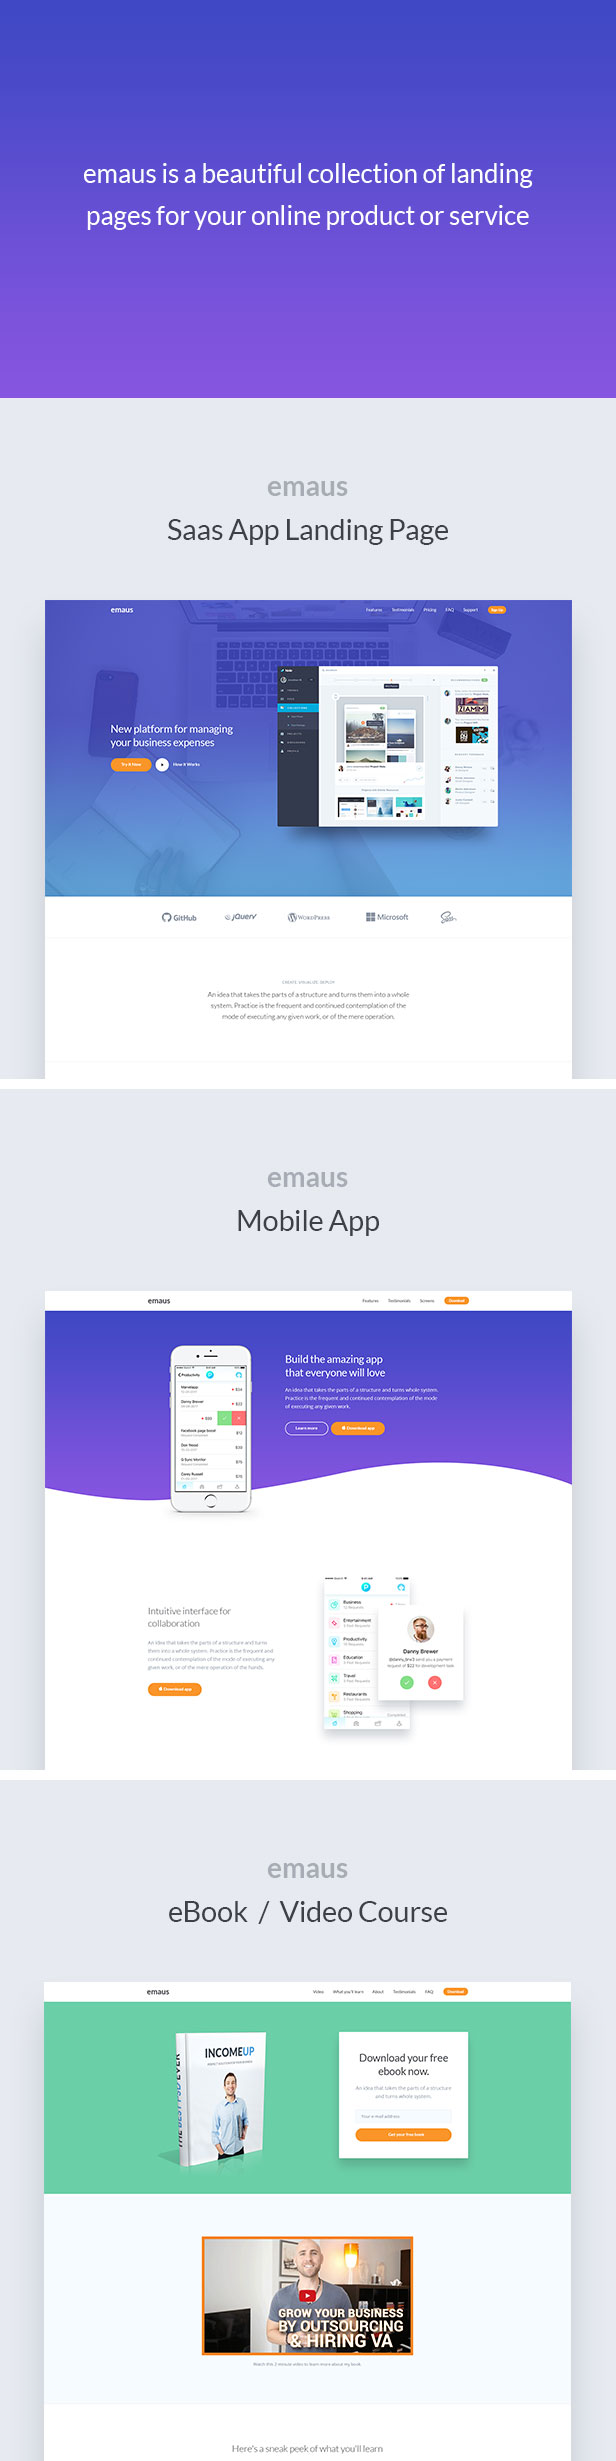 Emaus | SaaS, WebApp, Ebook Responsive Landing Page HTML by DeoThemes